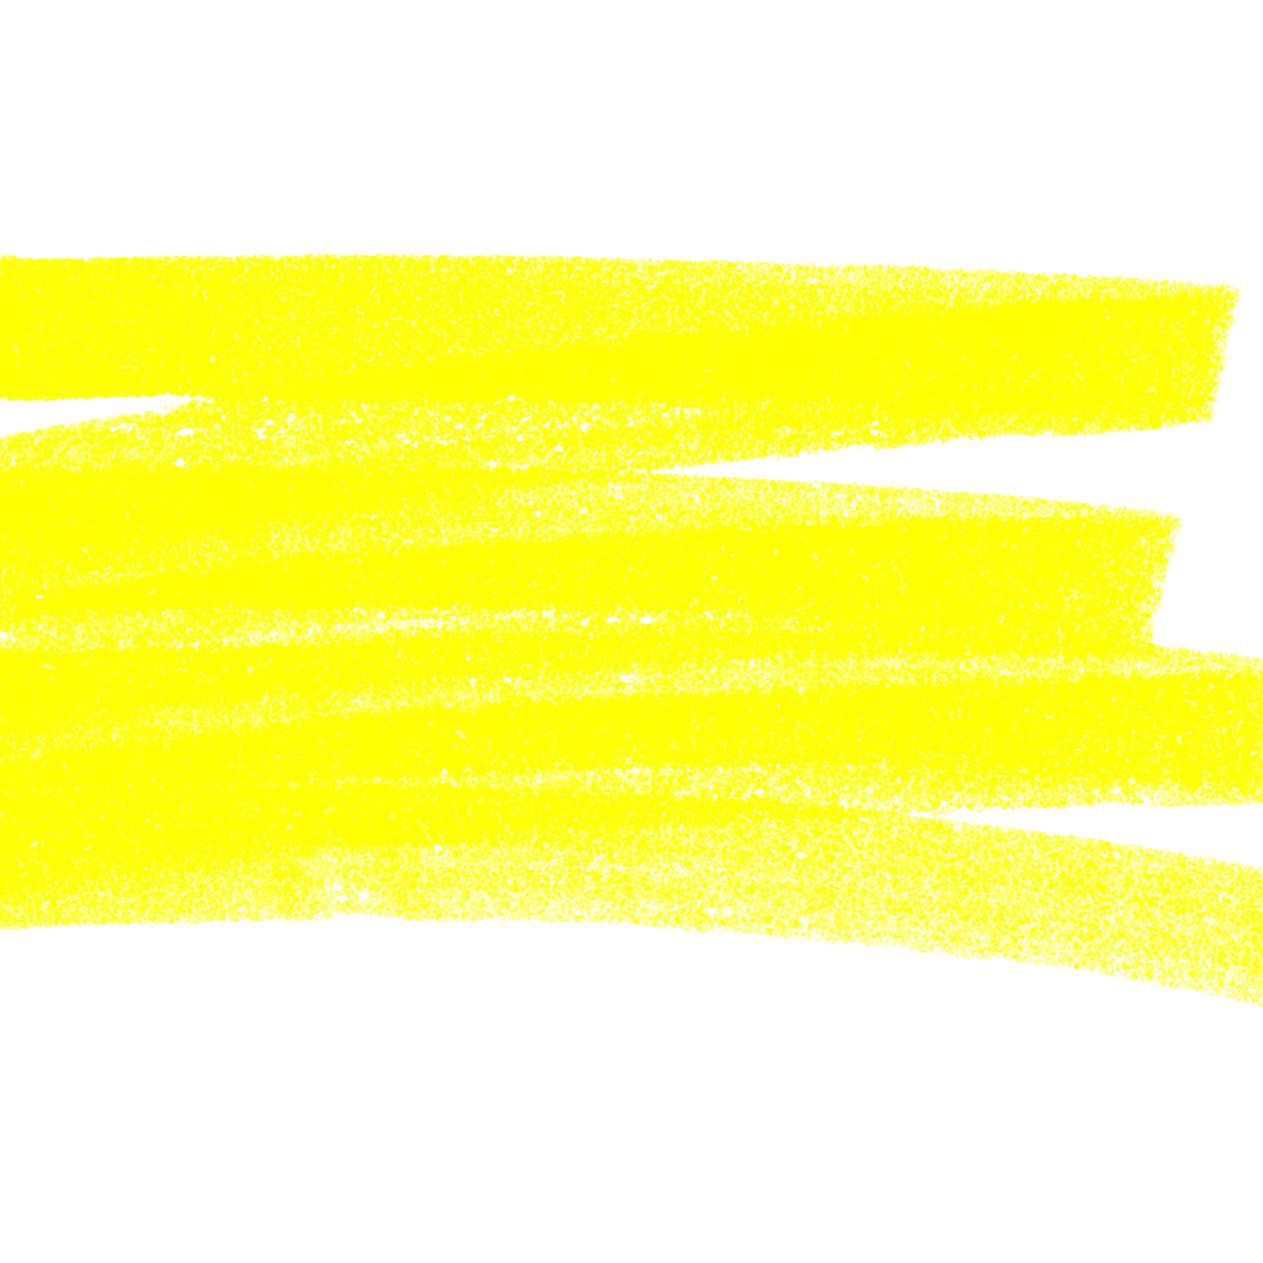 How to Highlight in PDF